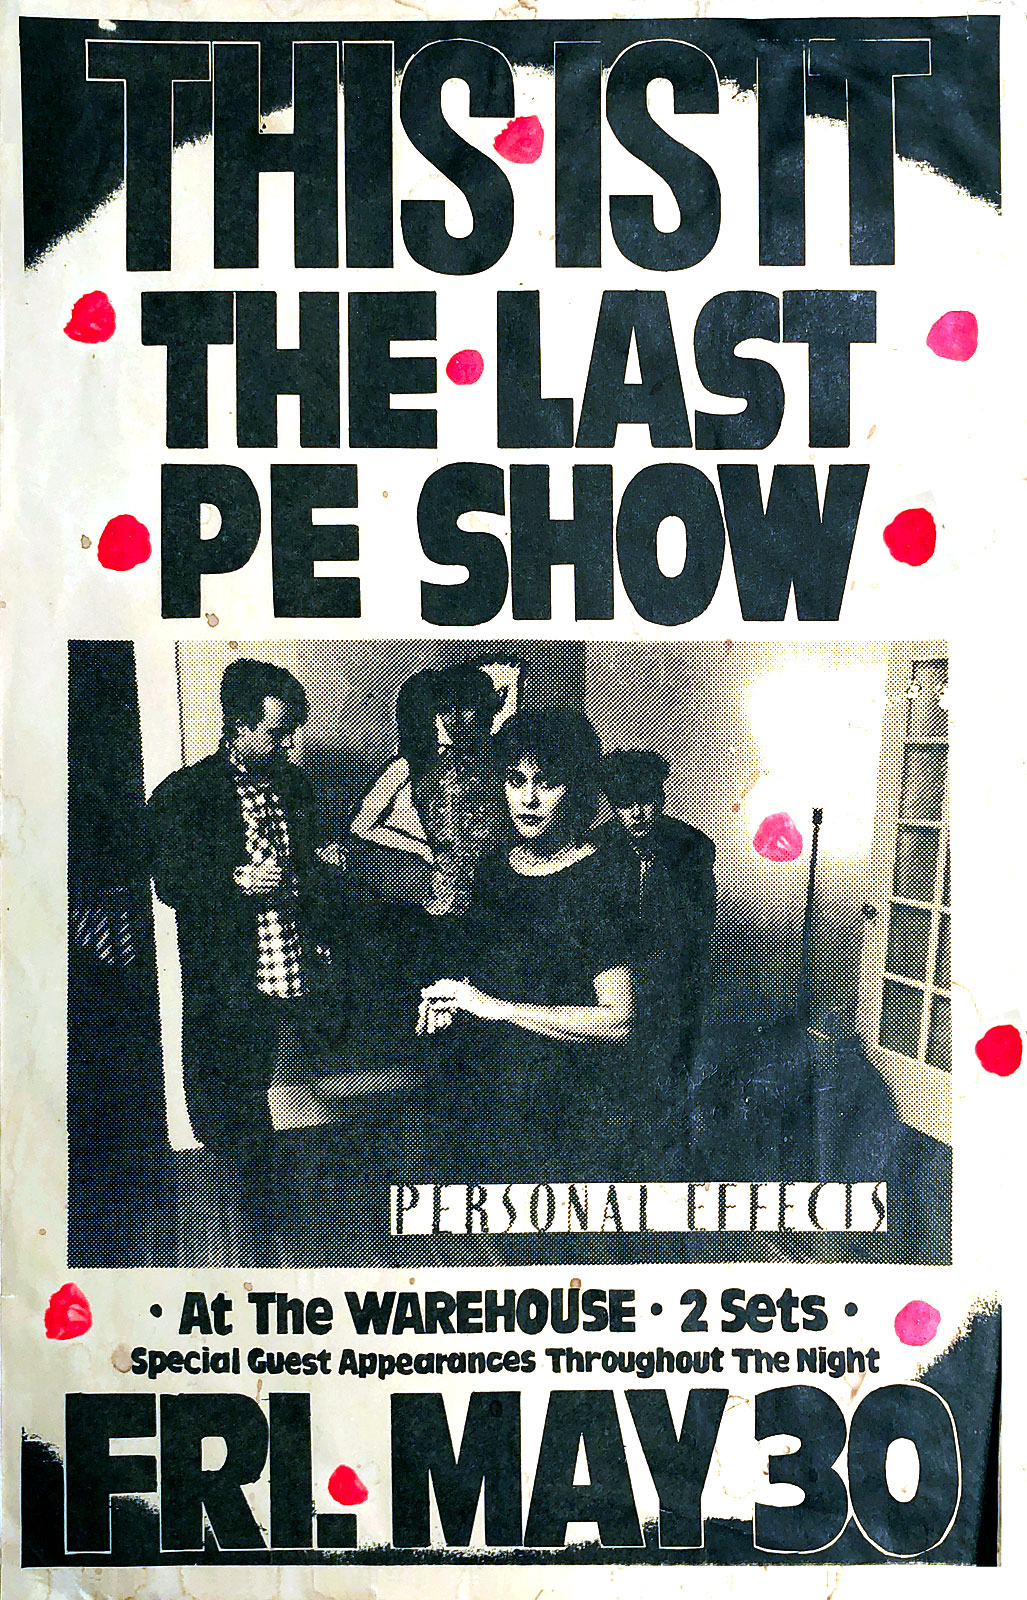 Poster for Personal Effects with Virgin Headset at The Warehouse in Rochester, New York on 053086. Billed as the last Personal Effects show the band reuntited to play the Planetarium gigs in 1987 and also played a few reunion shows.